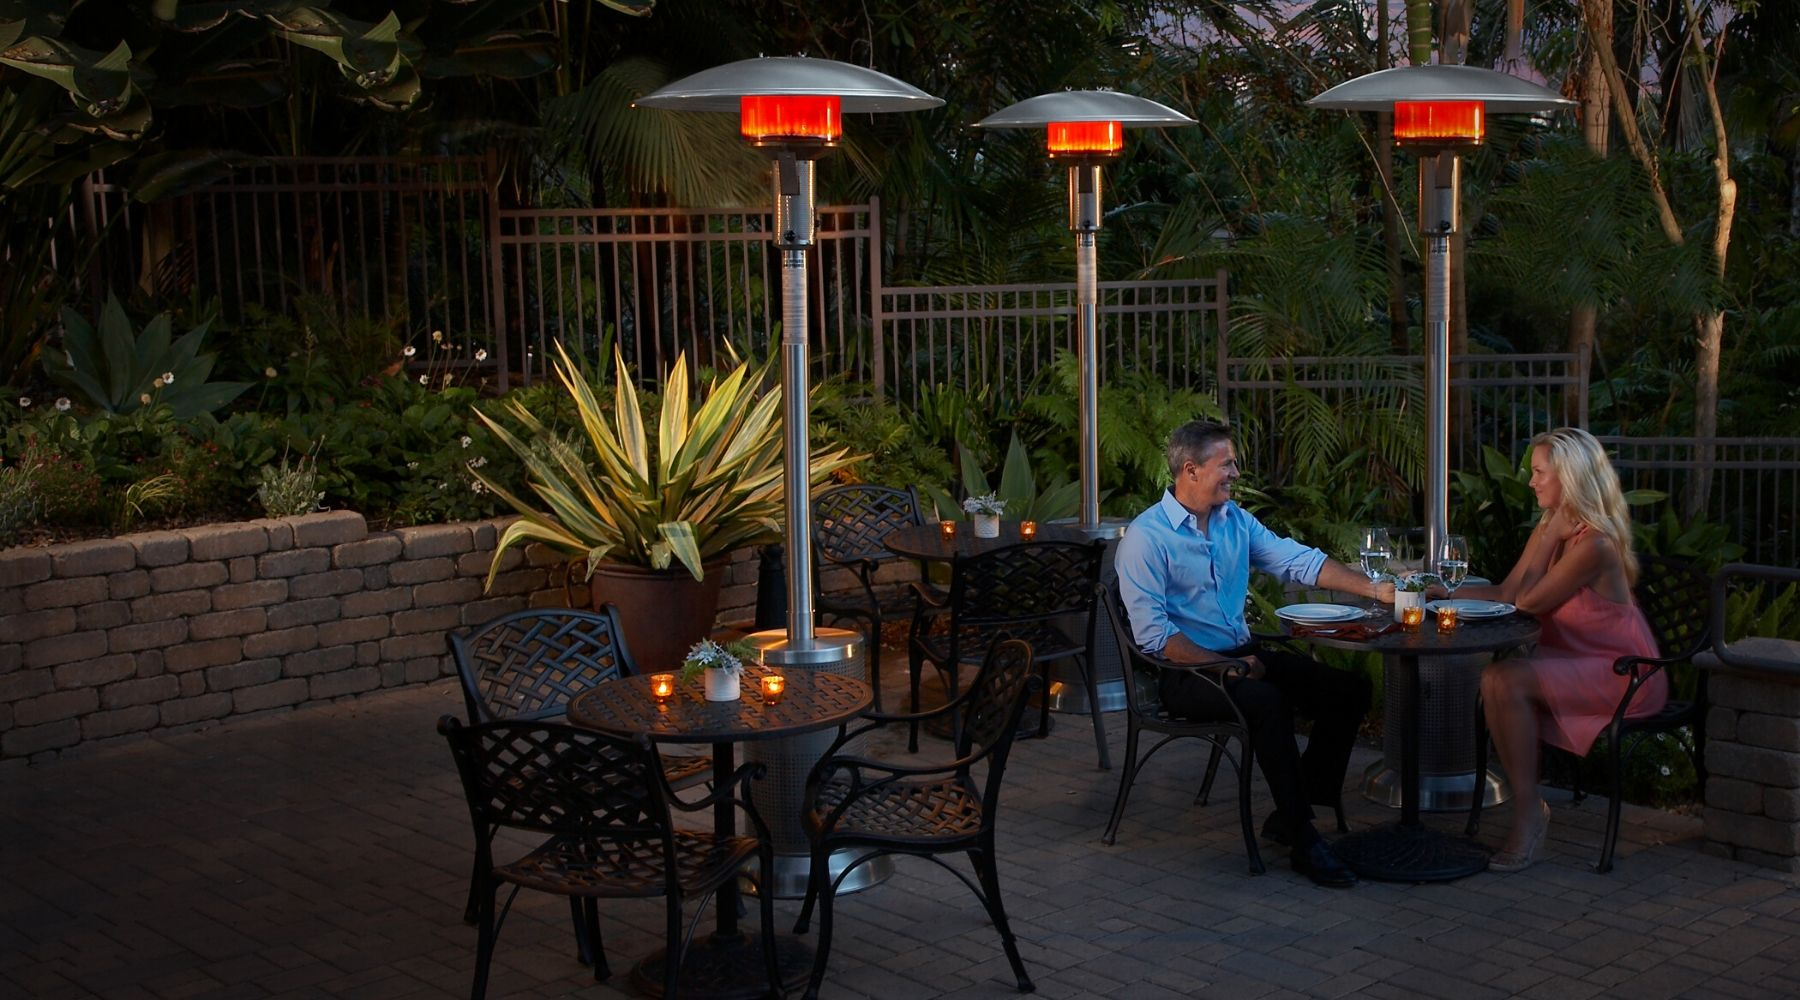 How to Choose the Best Gas Patio Heater?